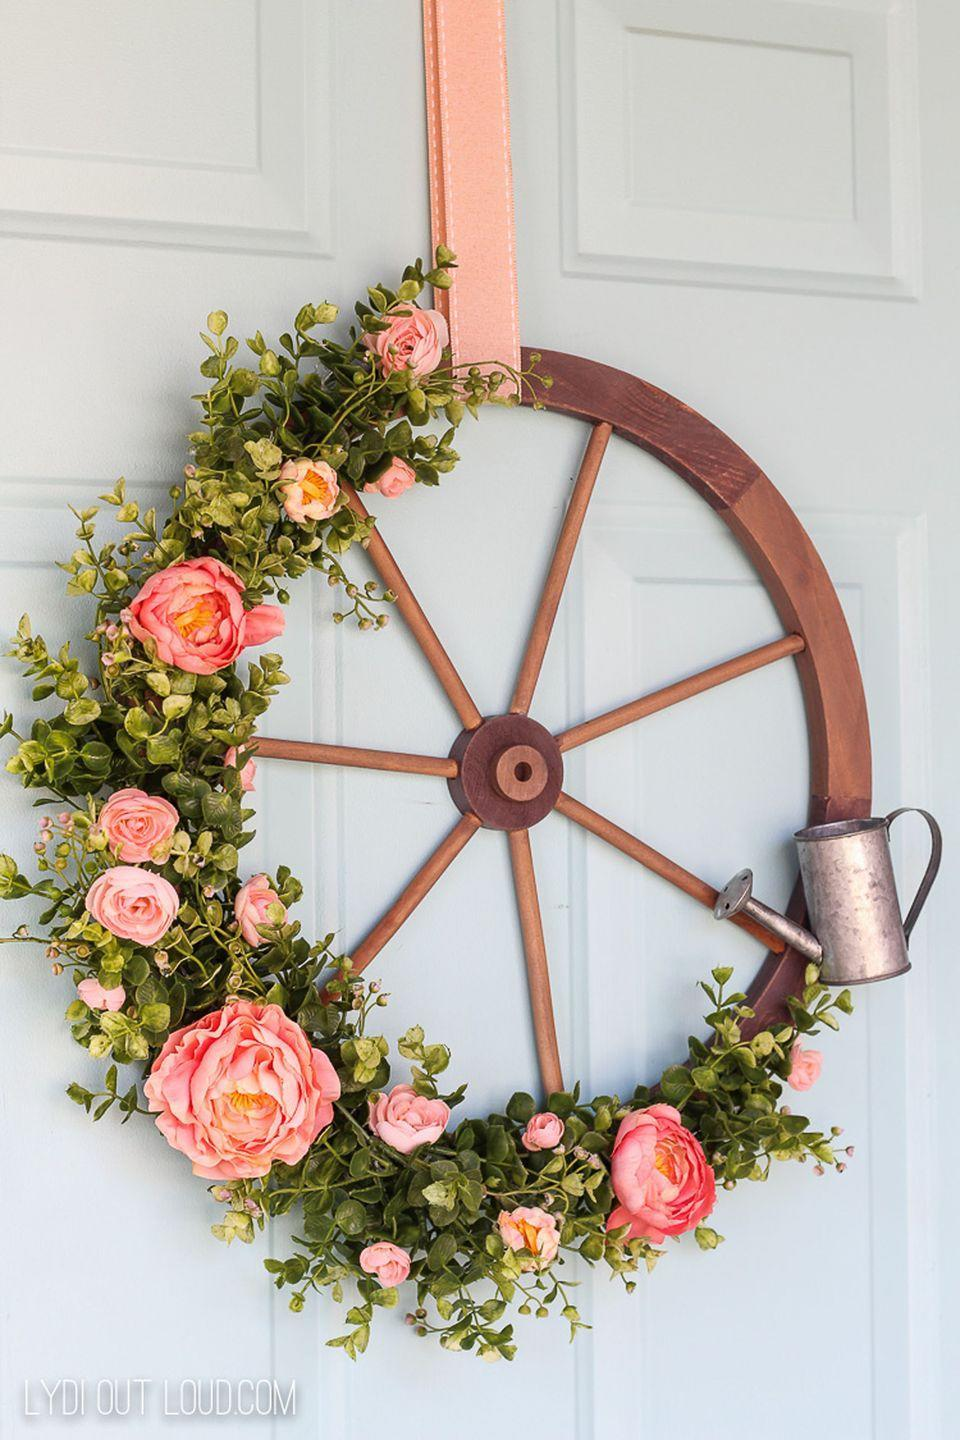 "<p>Add some farmhouse decor to your front door with this wagon wheel wreath. This blogger added a small watering can for extra oomph.</p><p><strong>Get the tutorial at <a href=""https://lydioutloud.com/wagon-wheel-farmhouse-style-wreath-tutorial/"" rel=""nofollow noopener"" target=""_blank"" data-ylk=""slk:Lydi Out Loud"" class=""link rapid-noclick-resp"">Lydi Out Loud</a>.</strong><br></p><p><a class=""link rapid-noclick-resp"" href=""https://www.amazon.com/Sculptures-Wooden-Decorative-Hanging-Inches/dp/B017S545C8/?tag=syn-yahoo-20&ascsubtag=%5Bartid%7C10050.g.4395%5Bsrc%7Cyahoo-us"" rel=""nofollow noopener"" target=""_blank"" data-ylk=""slk:SHOP WOODEN WAGON WHEELS"">SHOP WOODEN WAGON WHEELS</a> </p>"